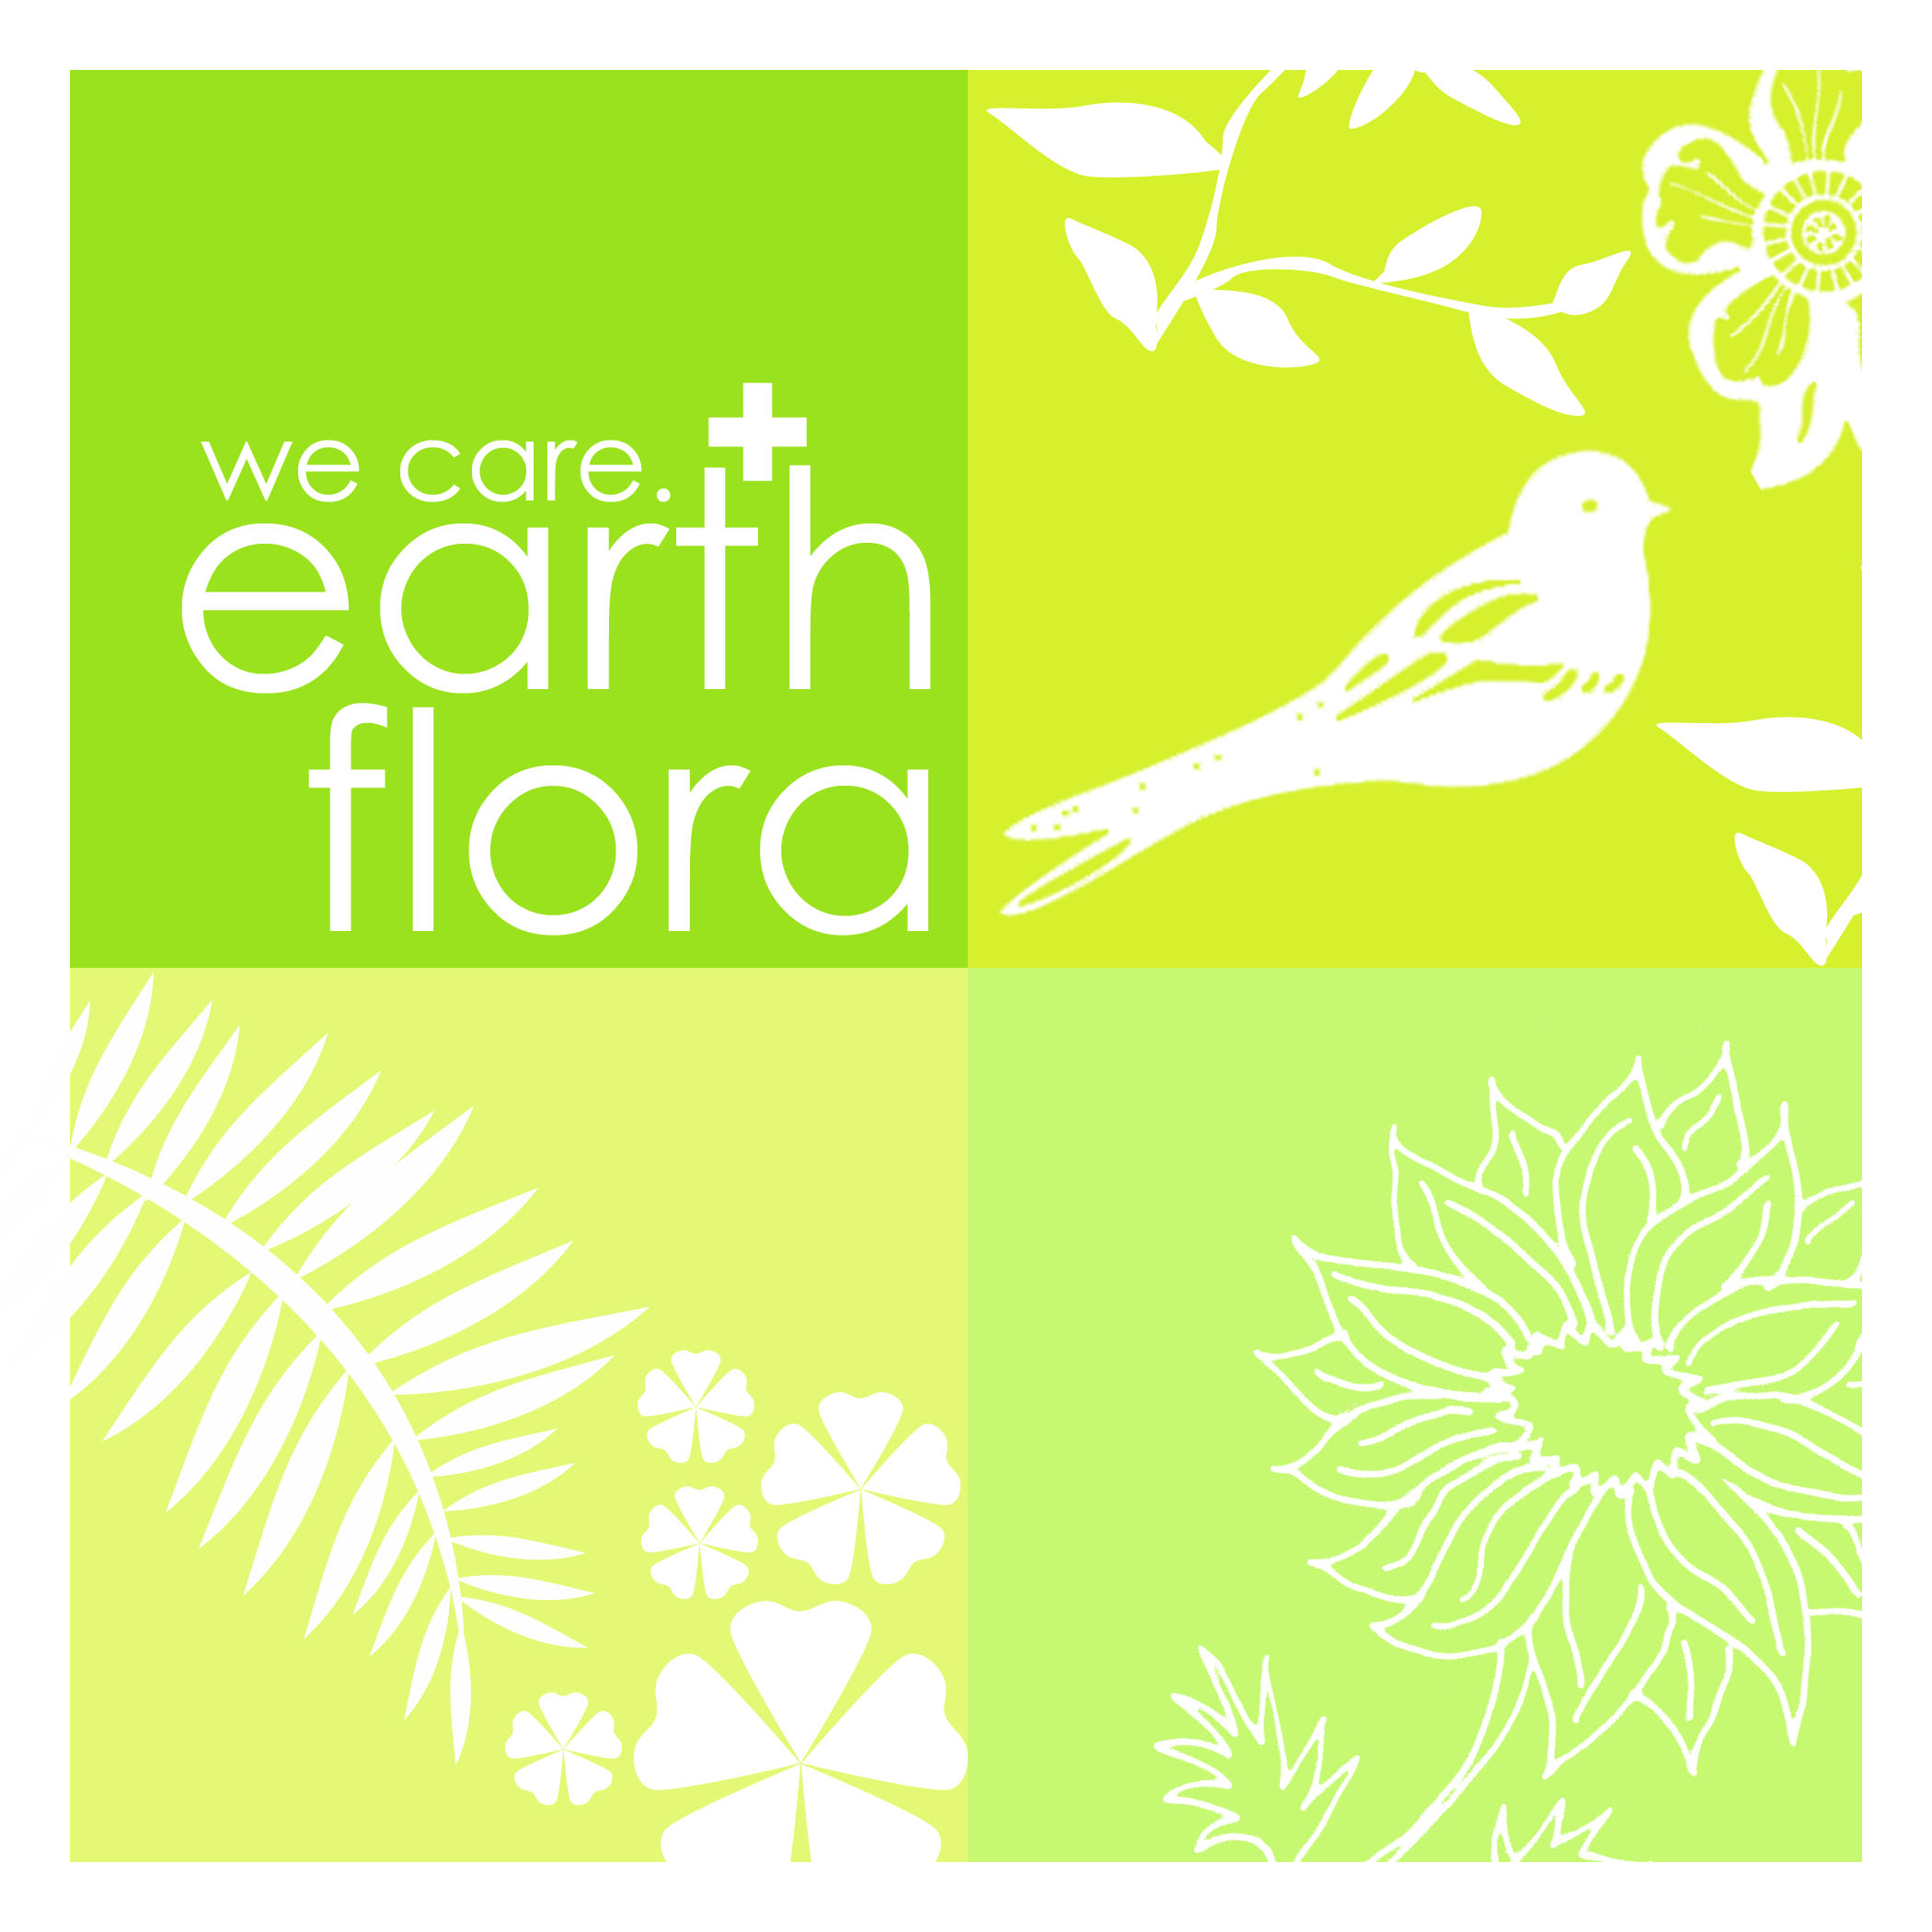 earthflora3-copy.jpg